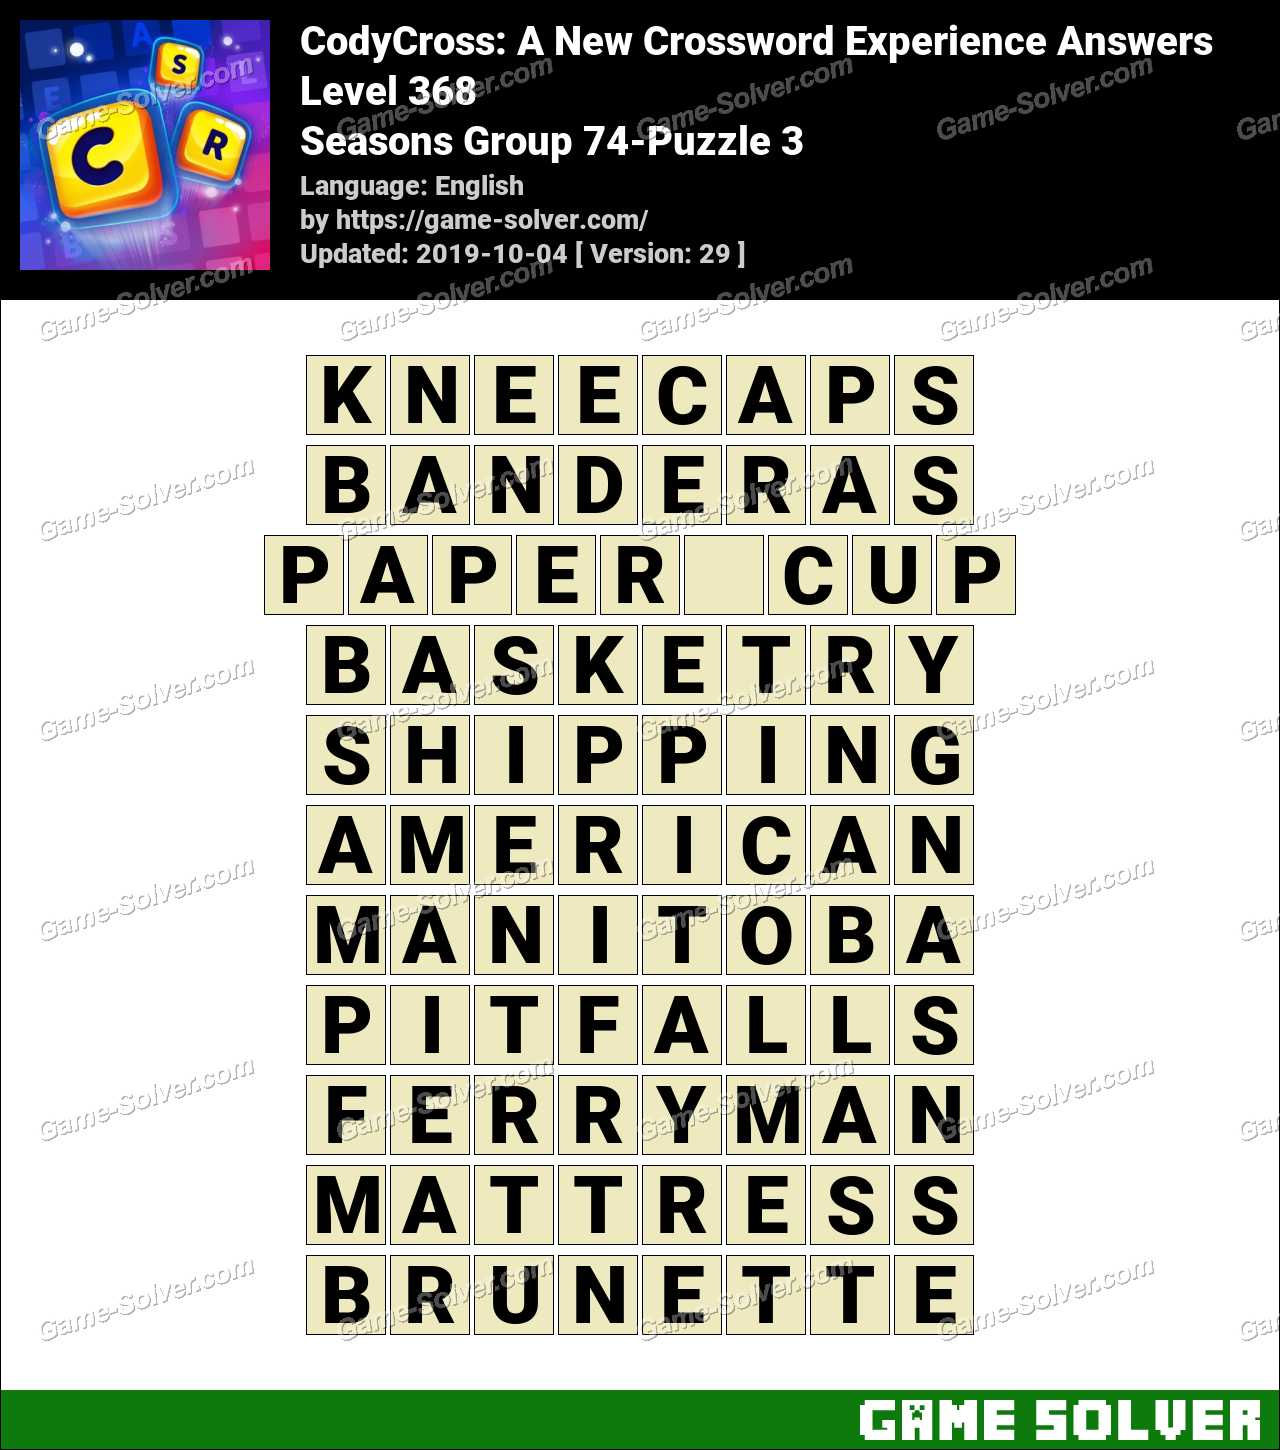 CodyCross Seasons Group 74-Puzzle 3 Answers